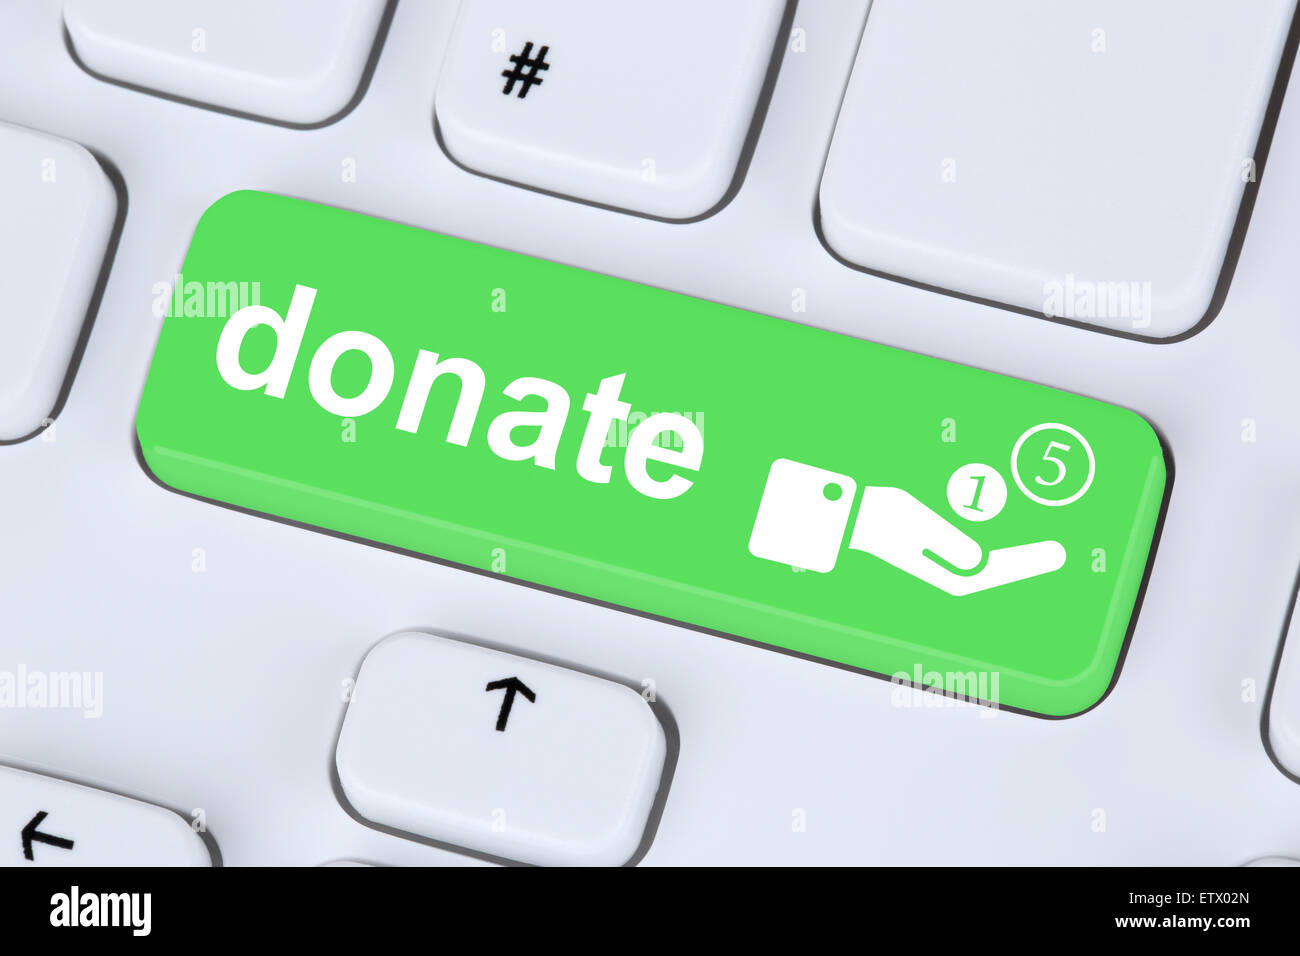 Donate money donation for a project symbol on computer keyboard - Stock Image